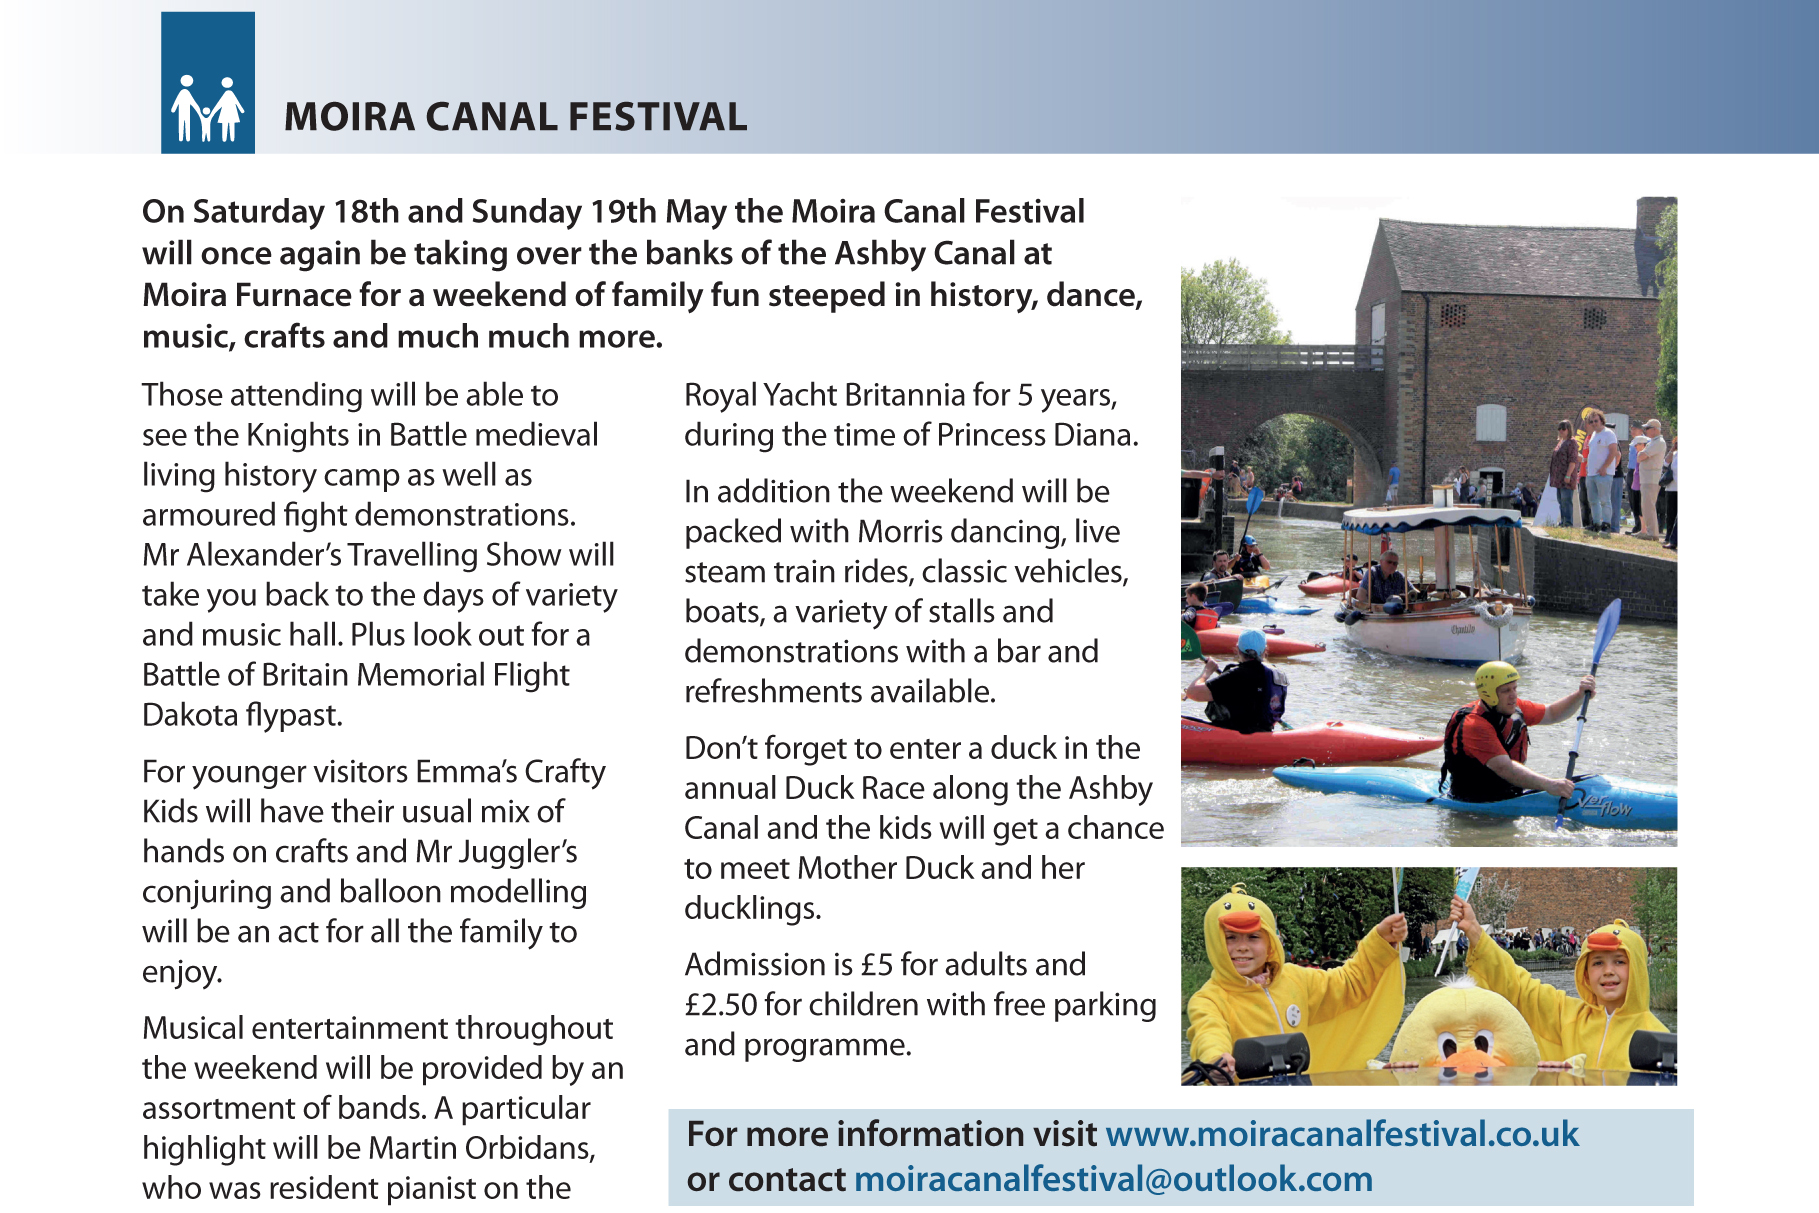 Moira Canal Festival 18-19 May